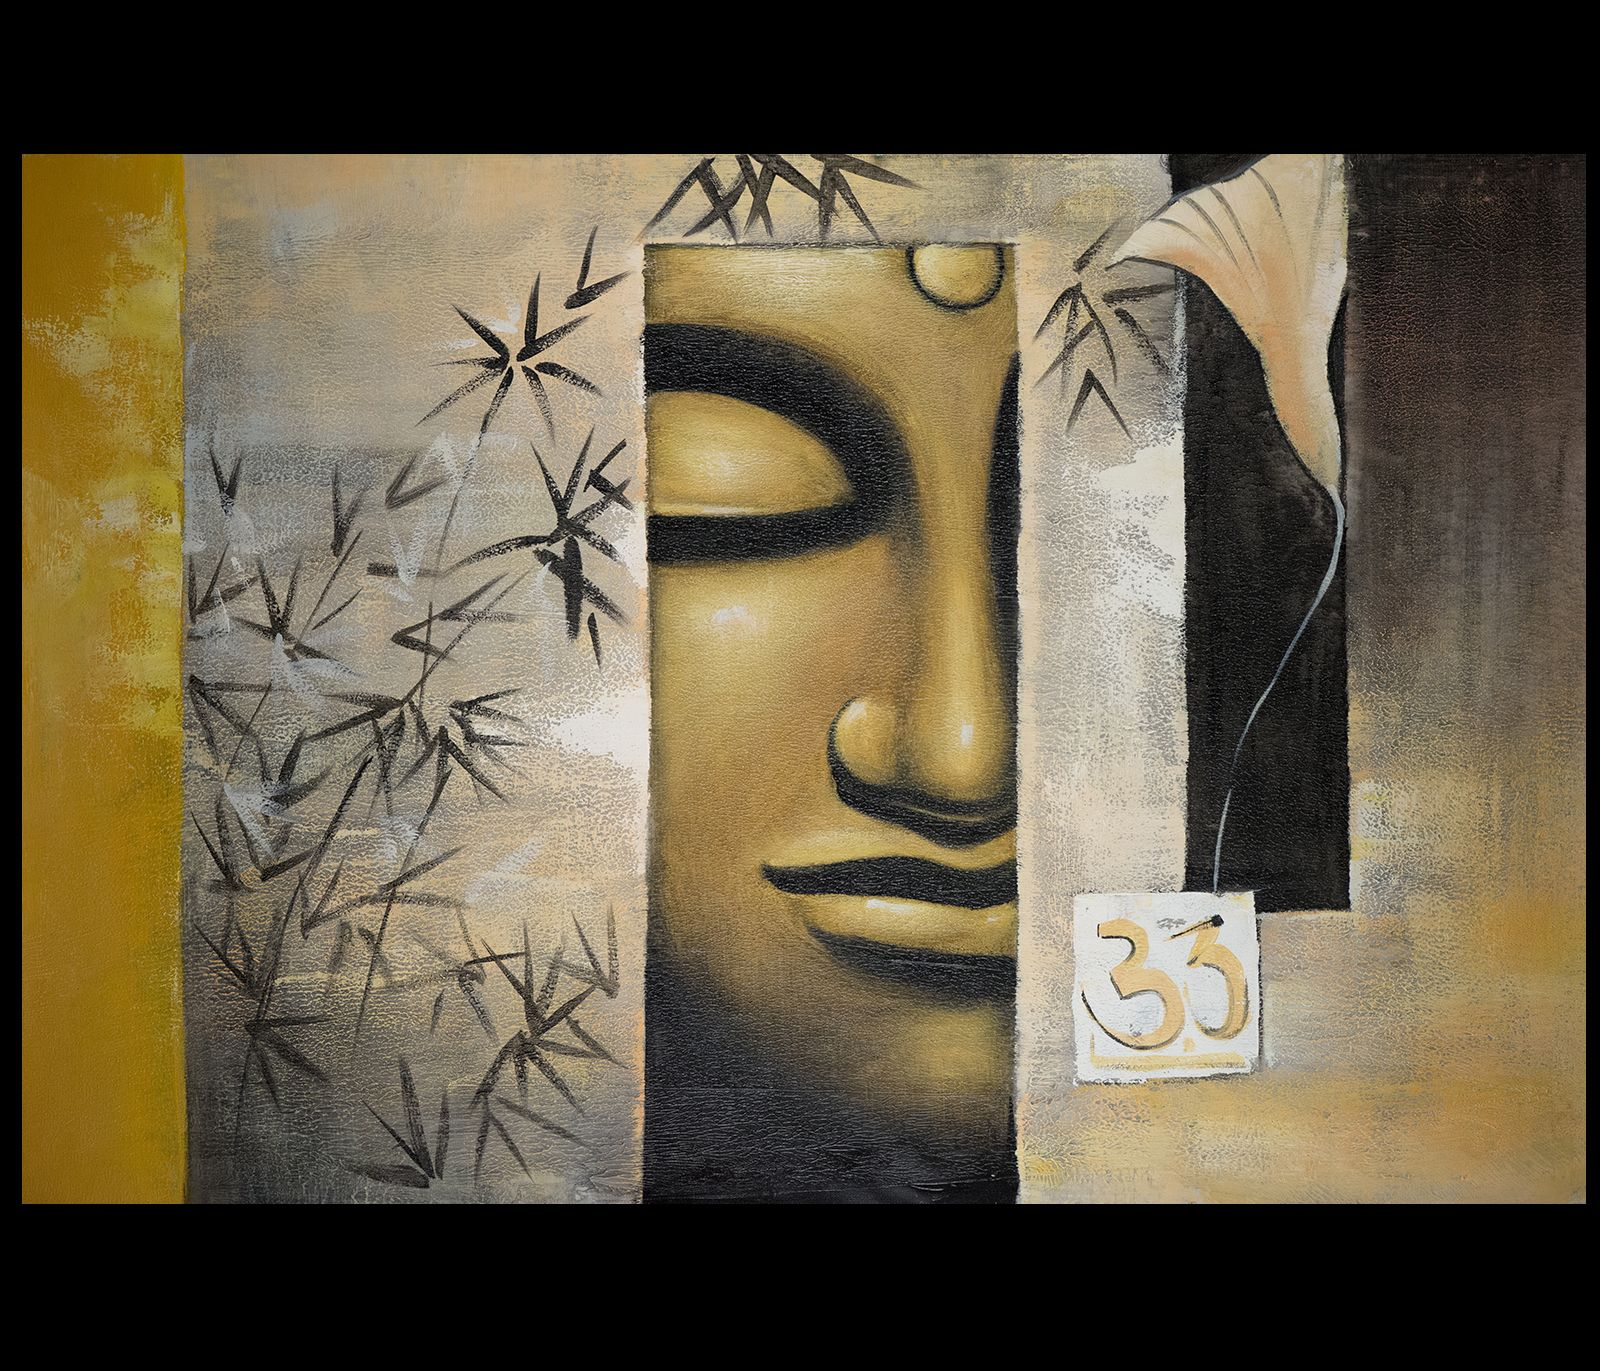 B004Hk8Wz4 Canvas Wall Art Modern Contemporary Abstract Art Framed Feng Shui Buddha (1600 1371)